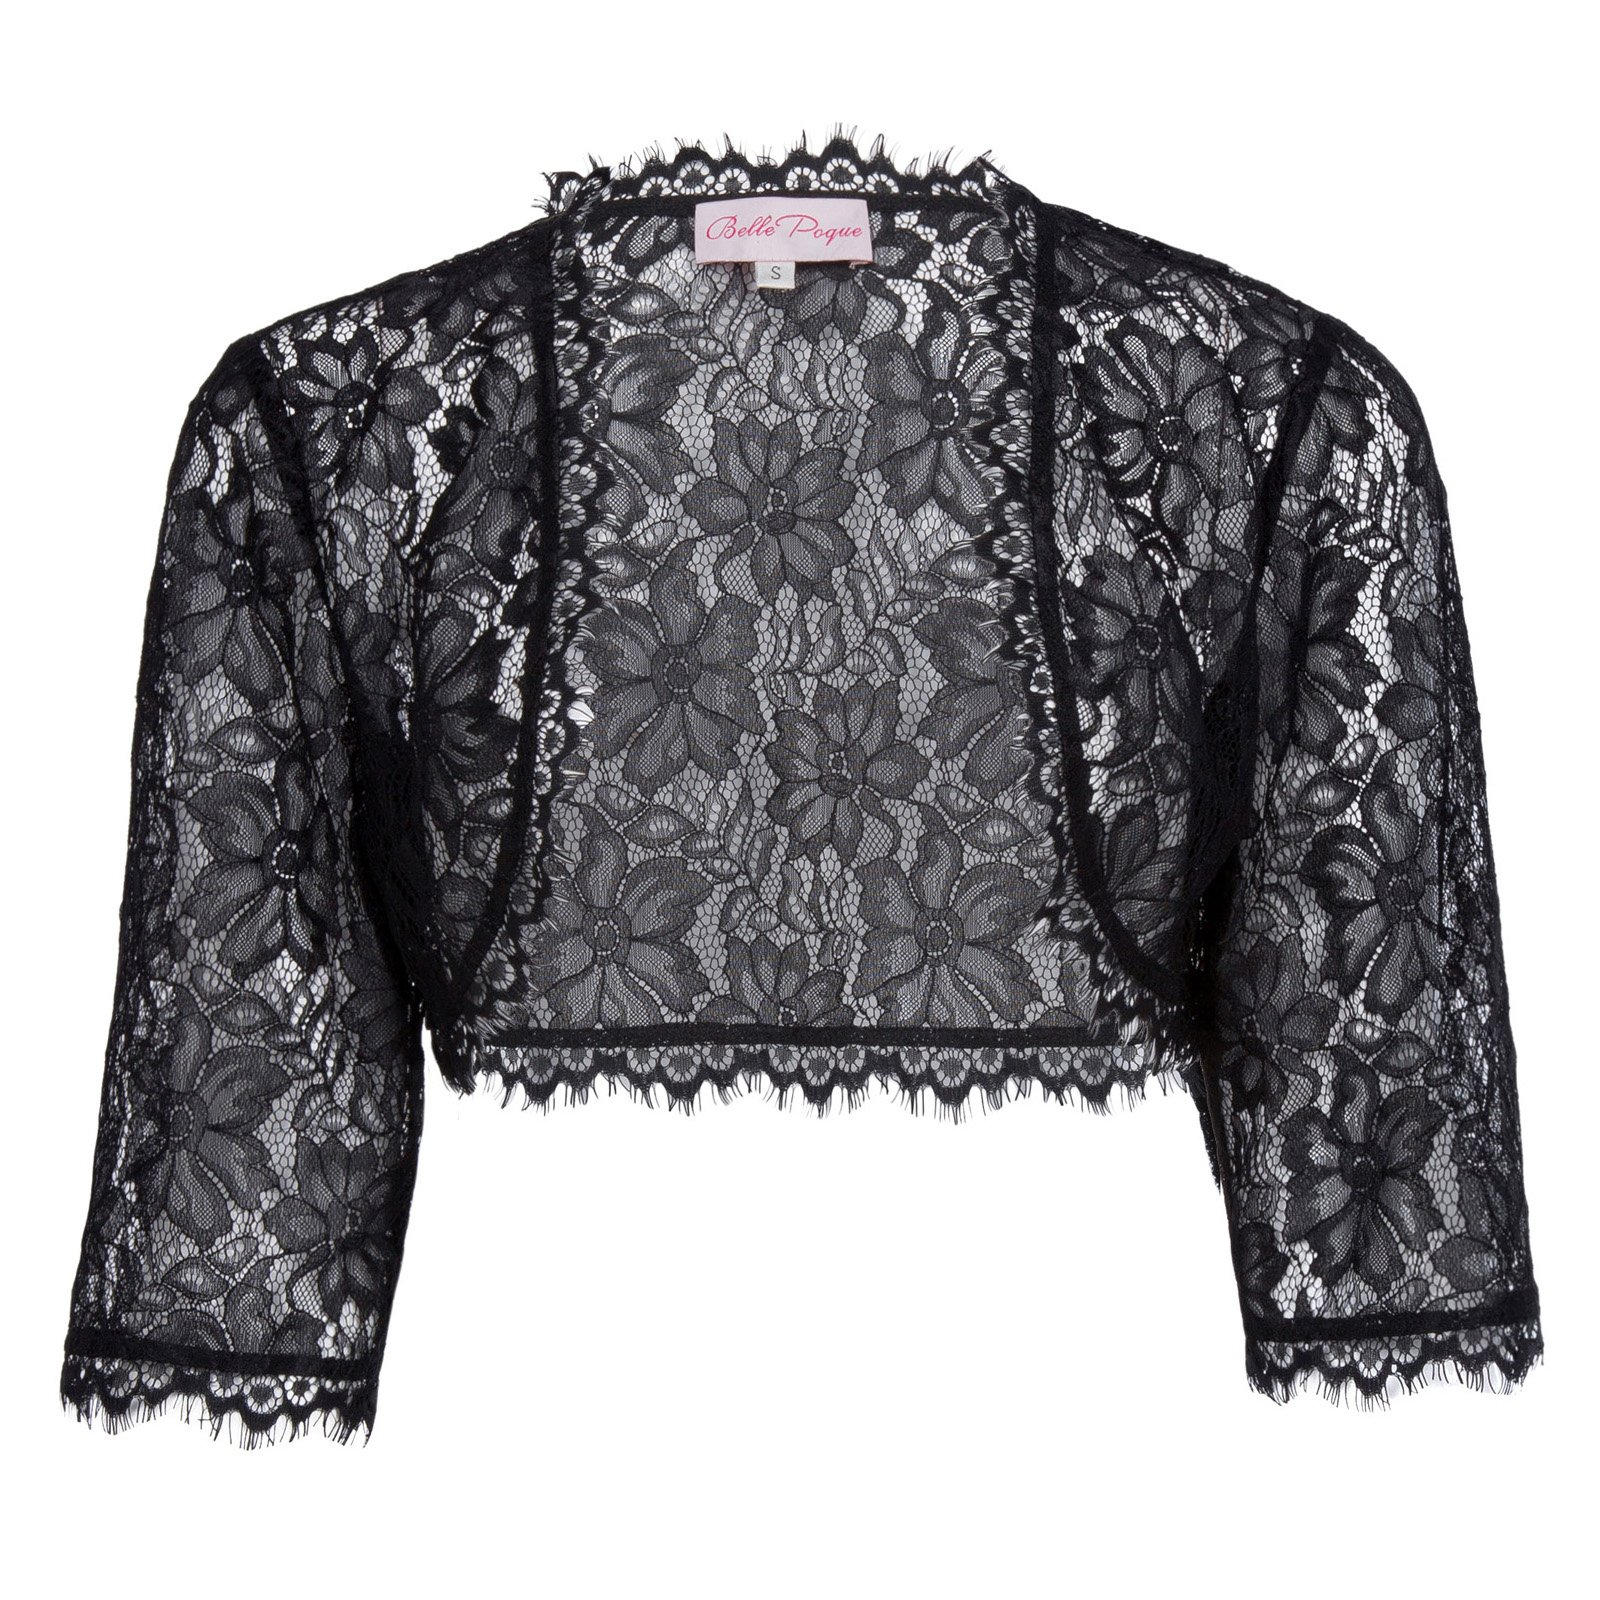 JS Fashion Vintage Dress Womens 3/4 Sleeve Lace Bolero Shrug Plus Size(3XL, Black)